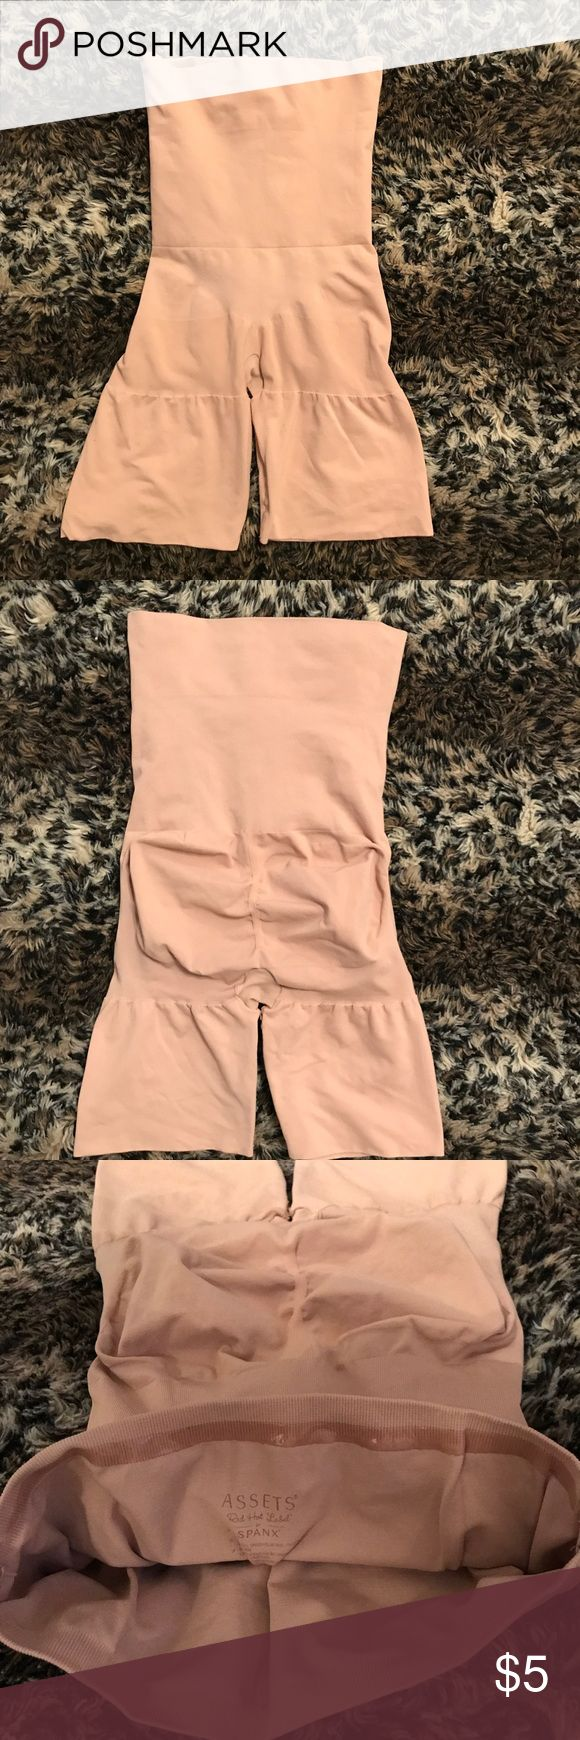 Assets by Spanx body shaper High waist mid thigh shaper, nude color. Has gripping strip on the back, intact. Item is gently loved. This shaper is considered plus size. Assets By Spanx Intimates & Sleepwear Shapewear